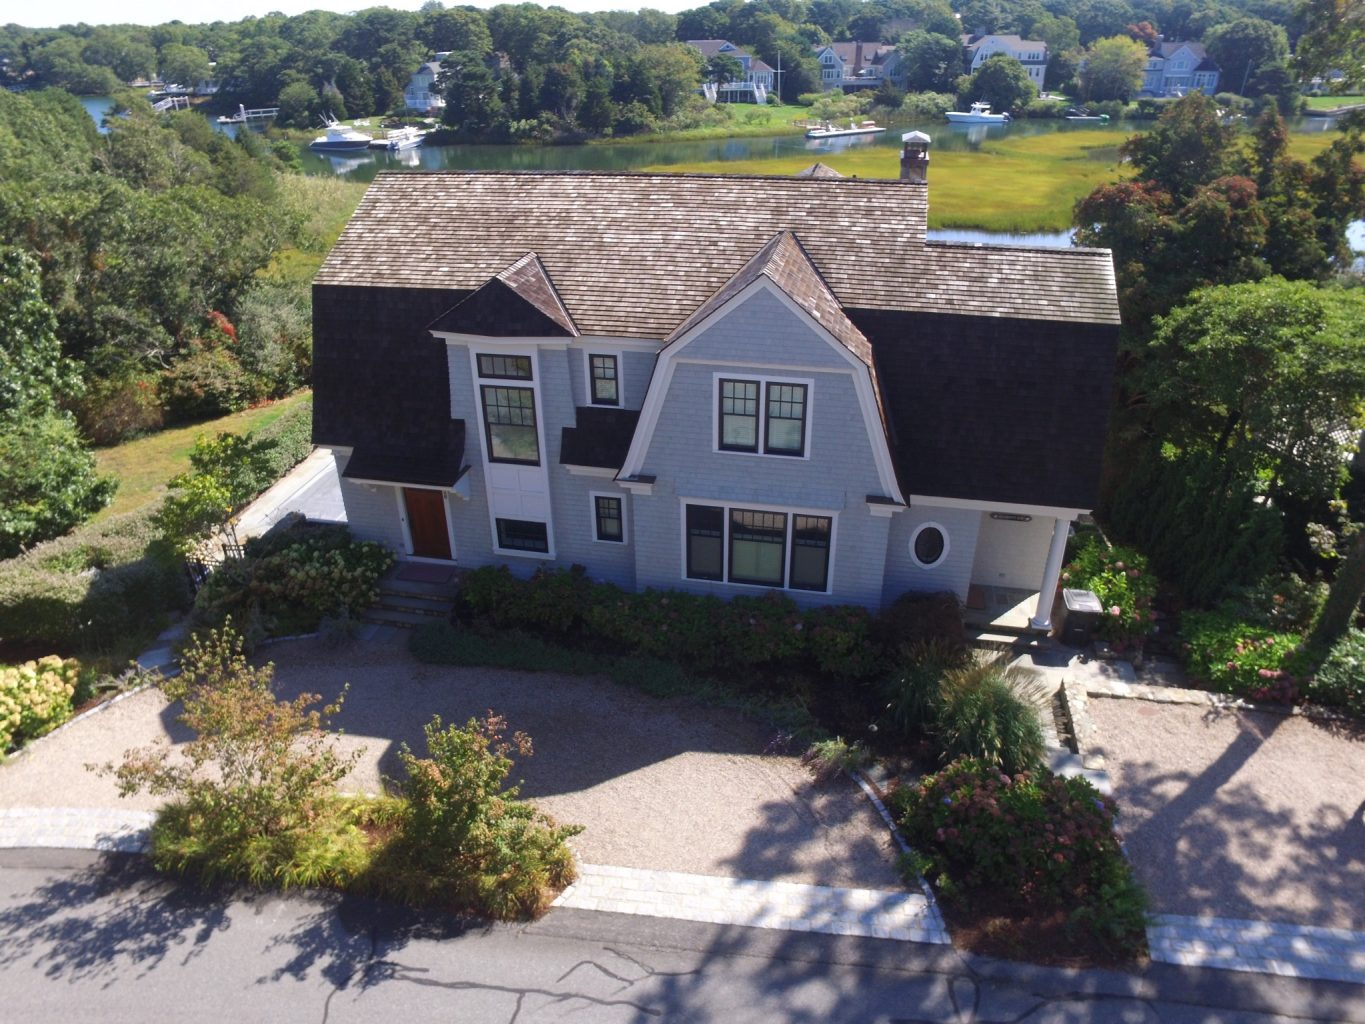 Arial view of a large home with gambrel style roof and a pond in the background